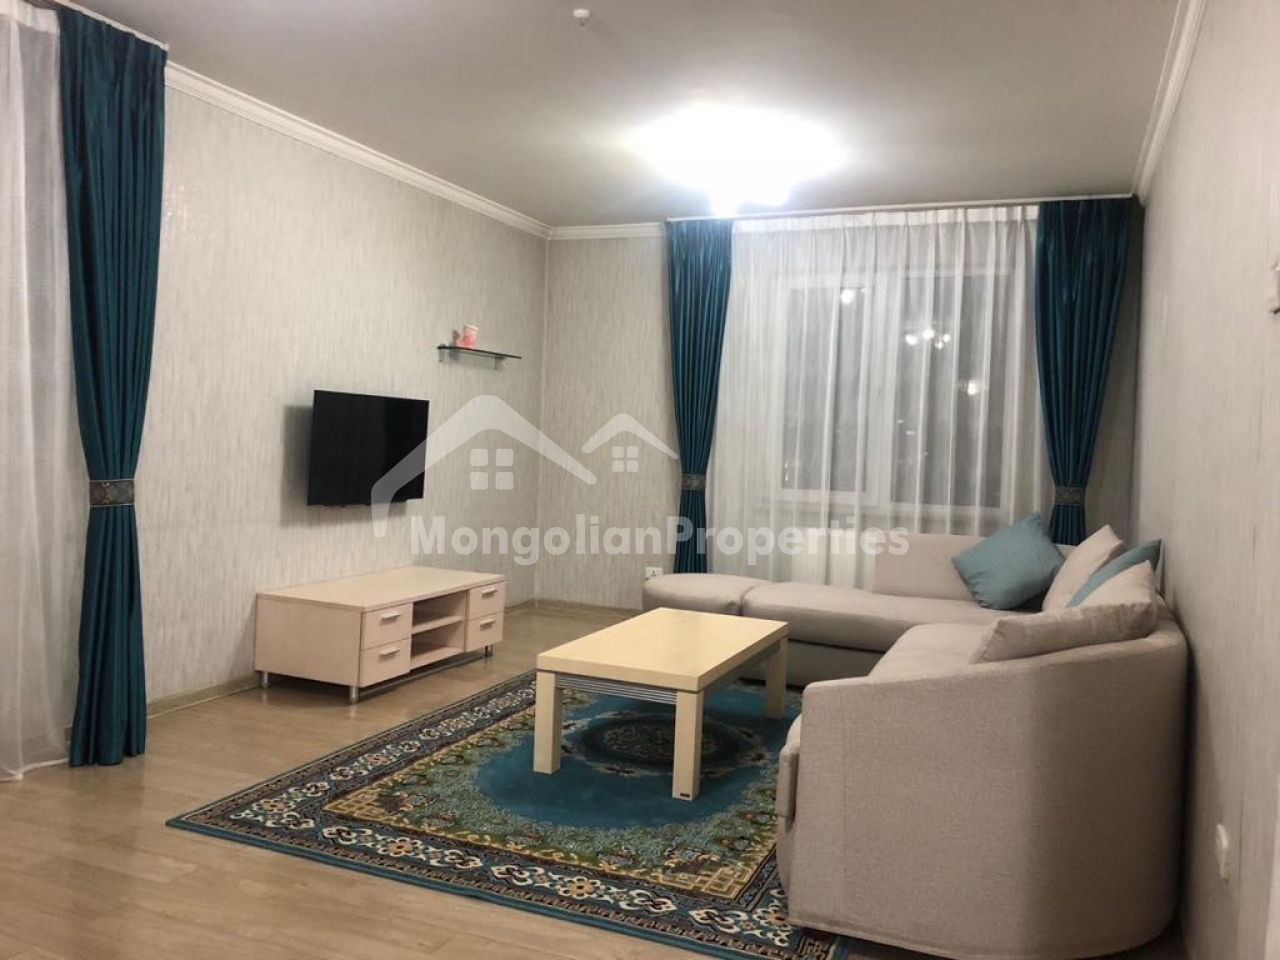 For rent: Comfortable 1 bedroom apartment is for rent at Golomt tower